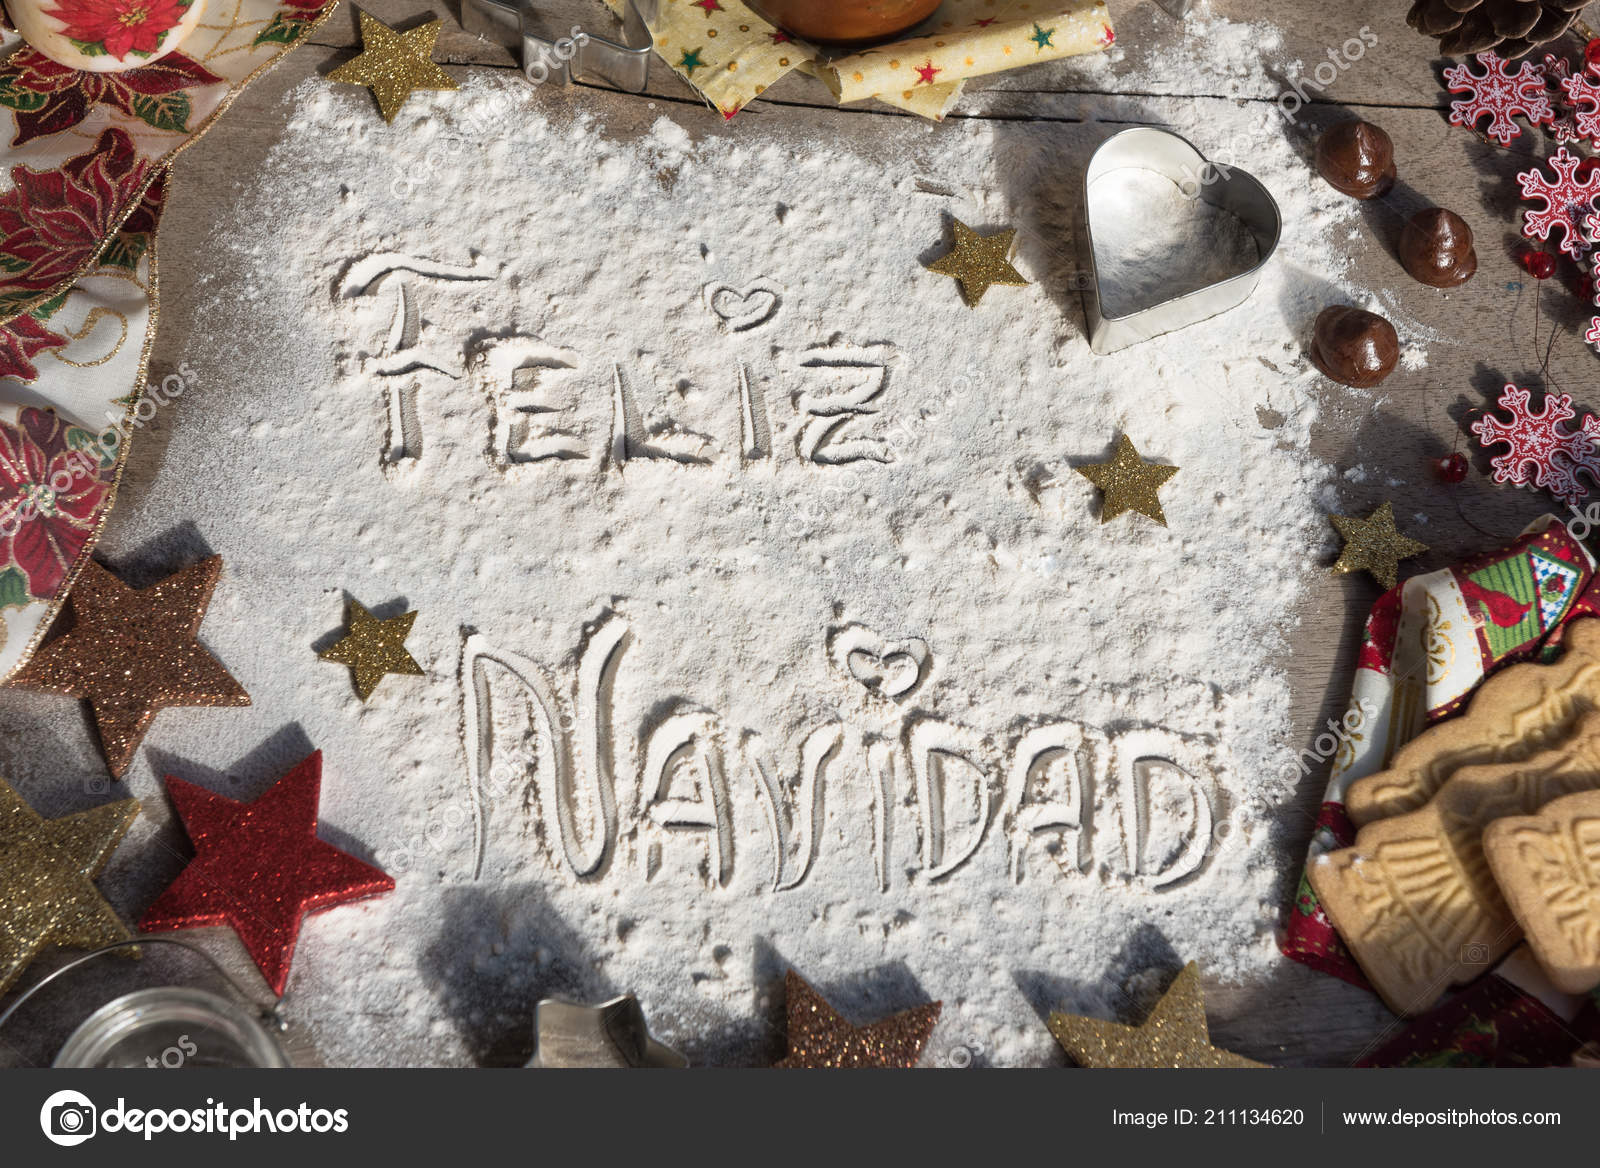 Feliz Navidad Spanish Text Made Flour Surrounded Christmas Decorations Seasonal — Stock Photo